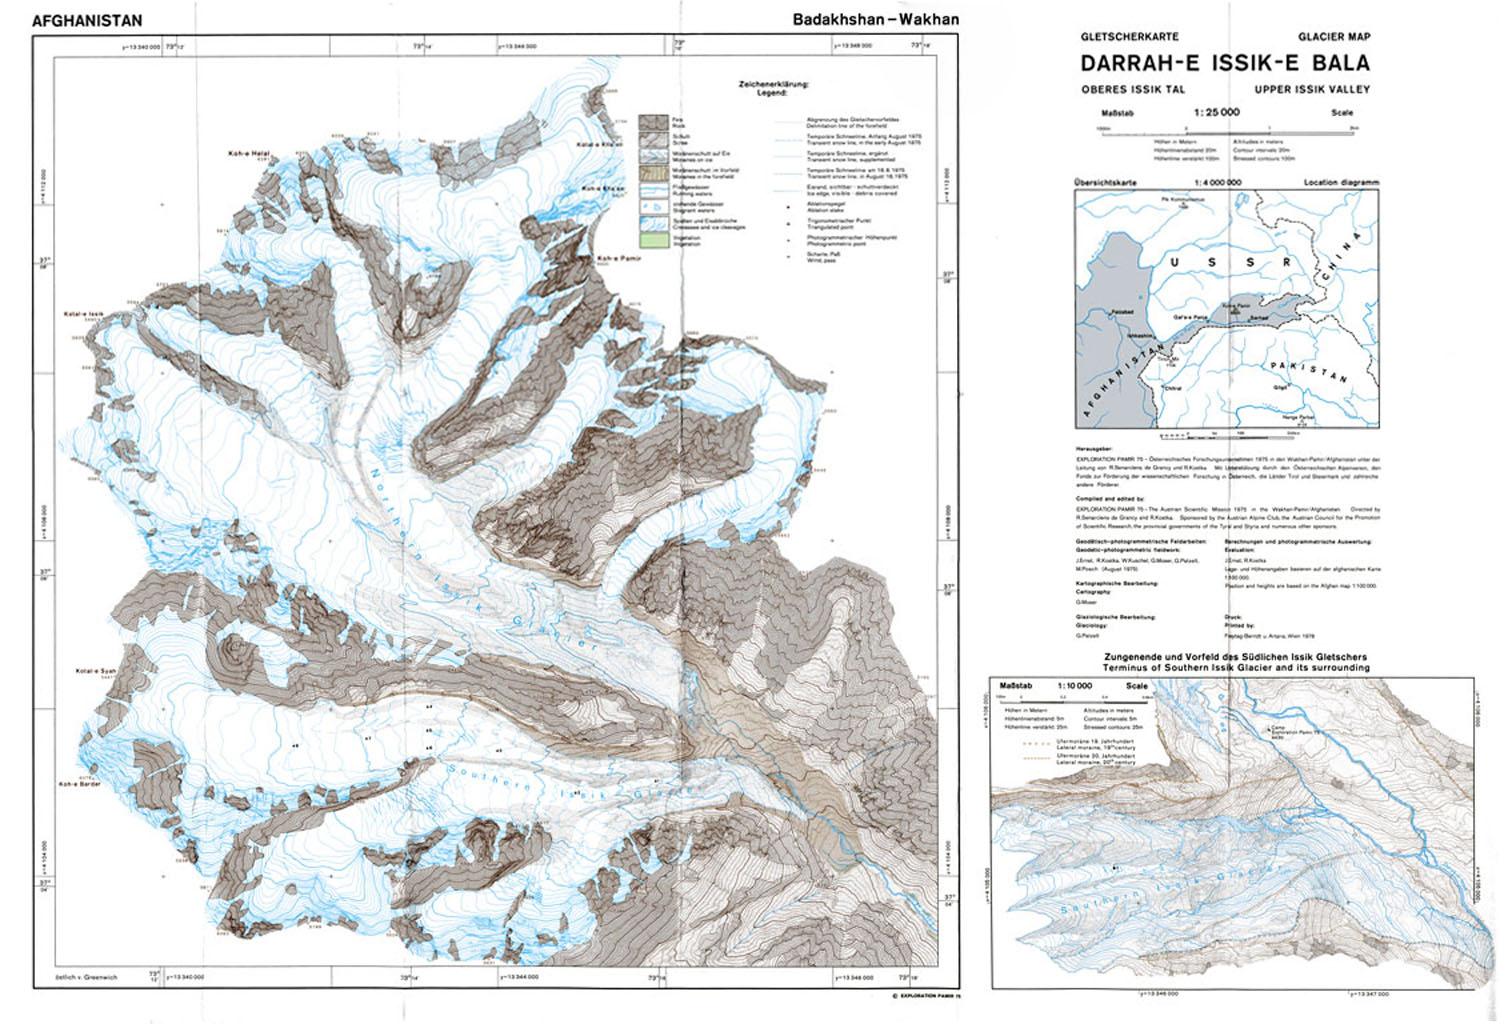 fluctuations of glaciers maps. fluctuations of glaciers maps – world glacier monitoring service